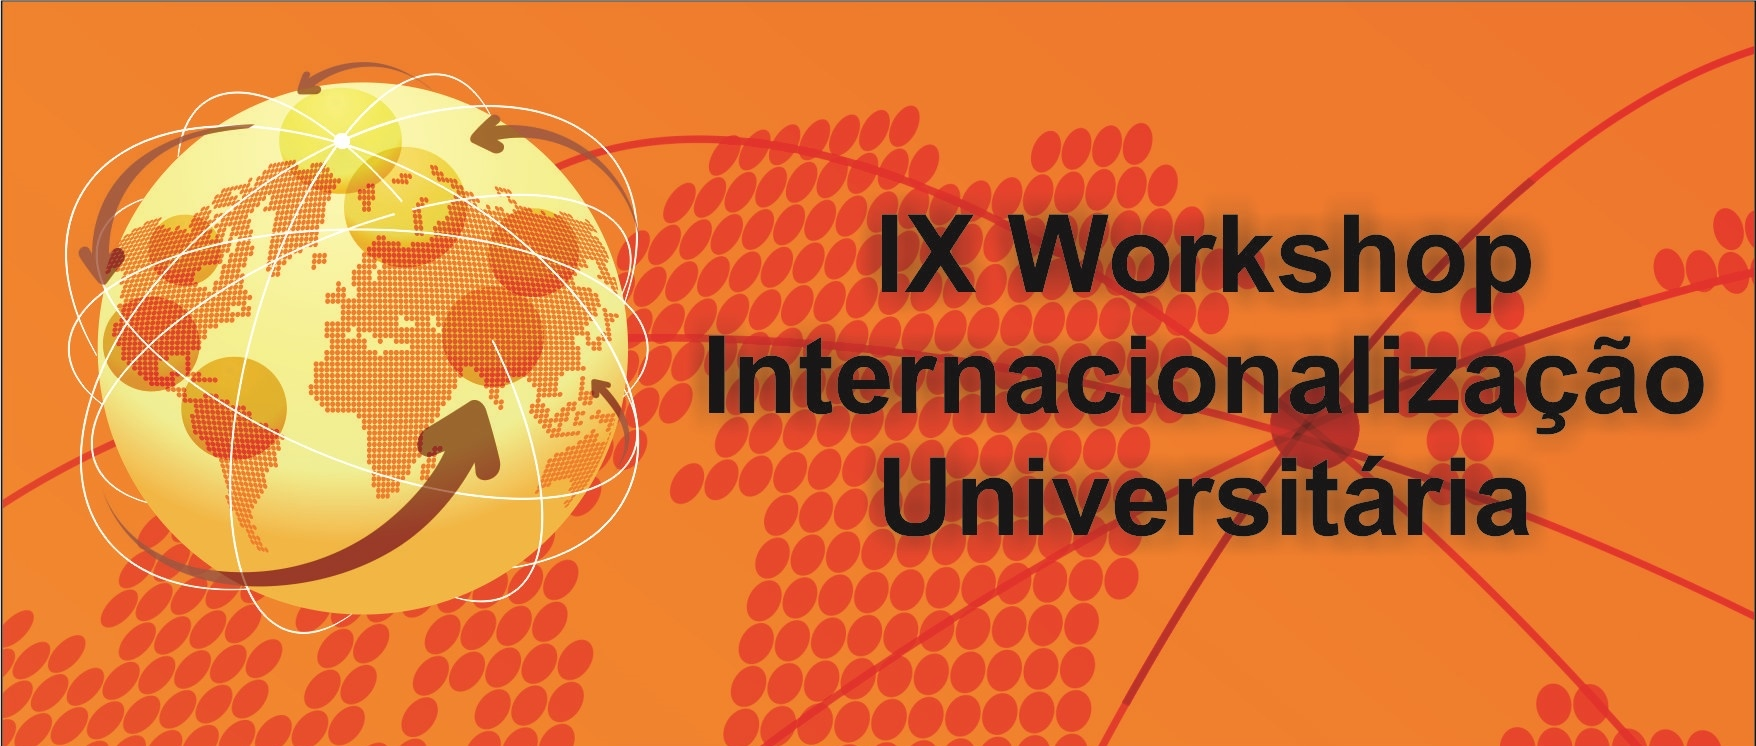 IX Workshop Internacionalização Universitária